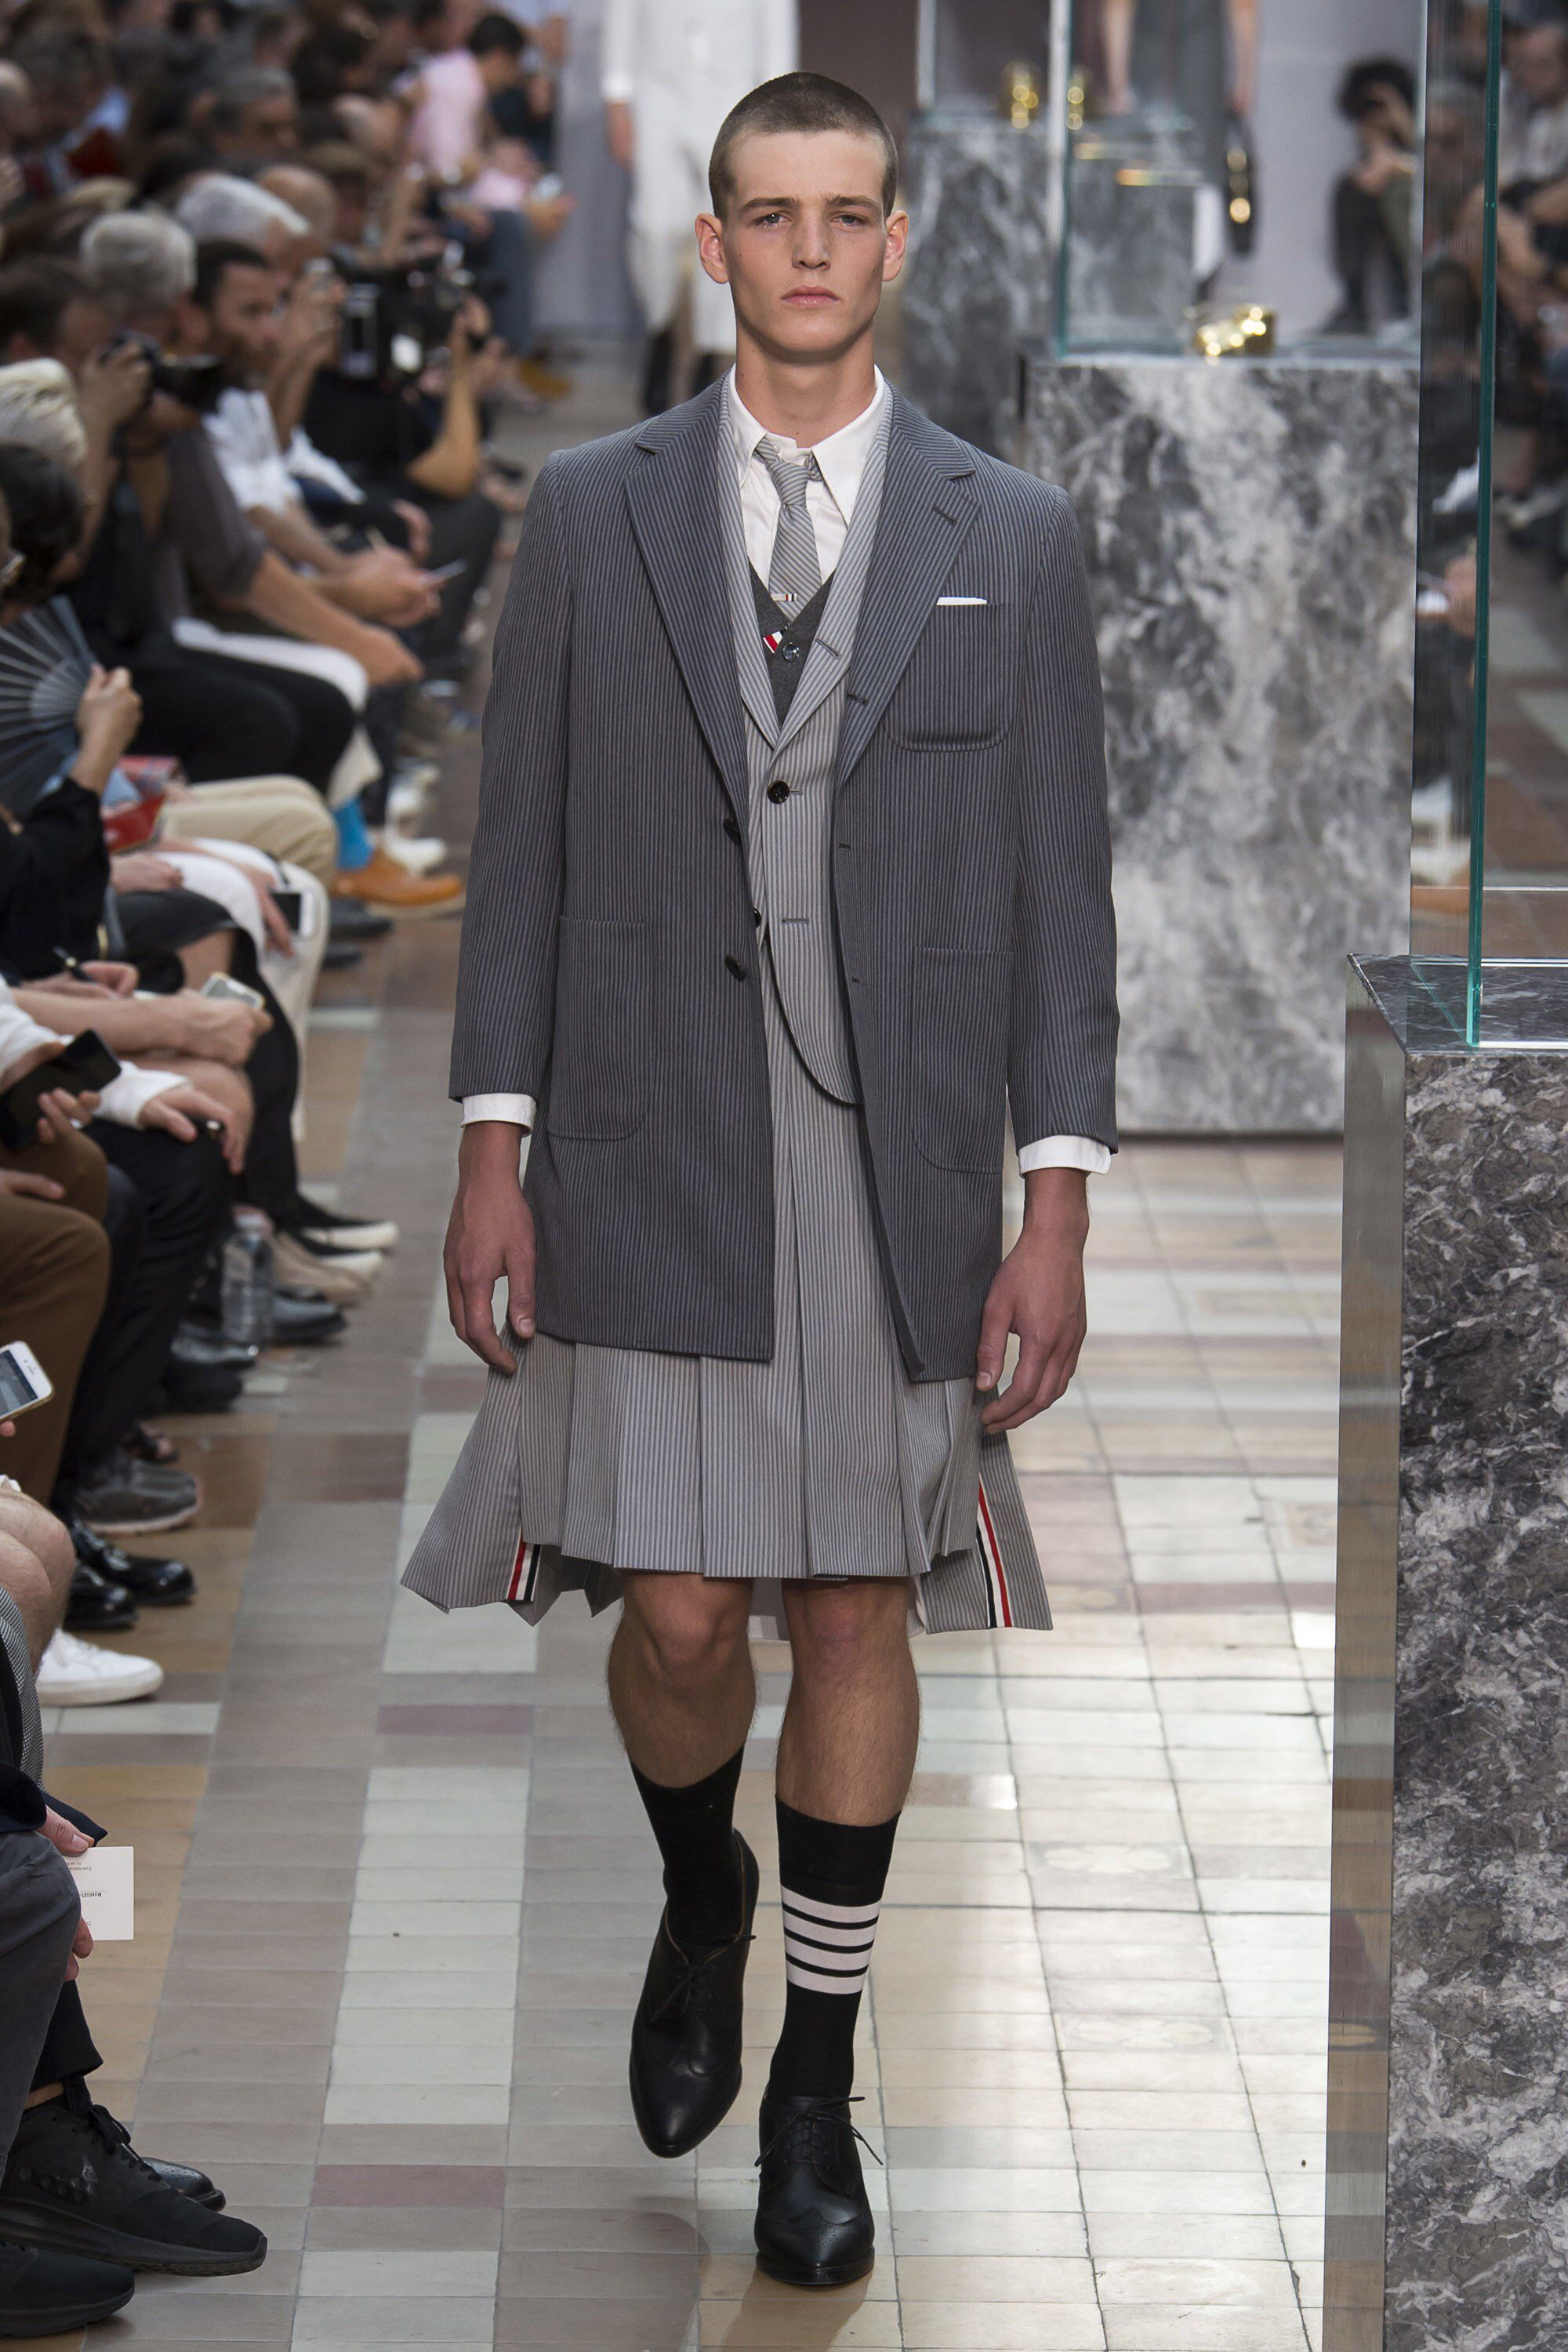 e2017318fb96 Thom Browne Spring 2018 Menswear Fashion Show Collection